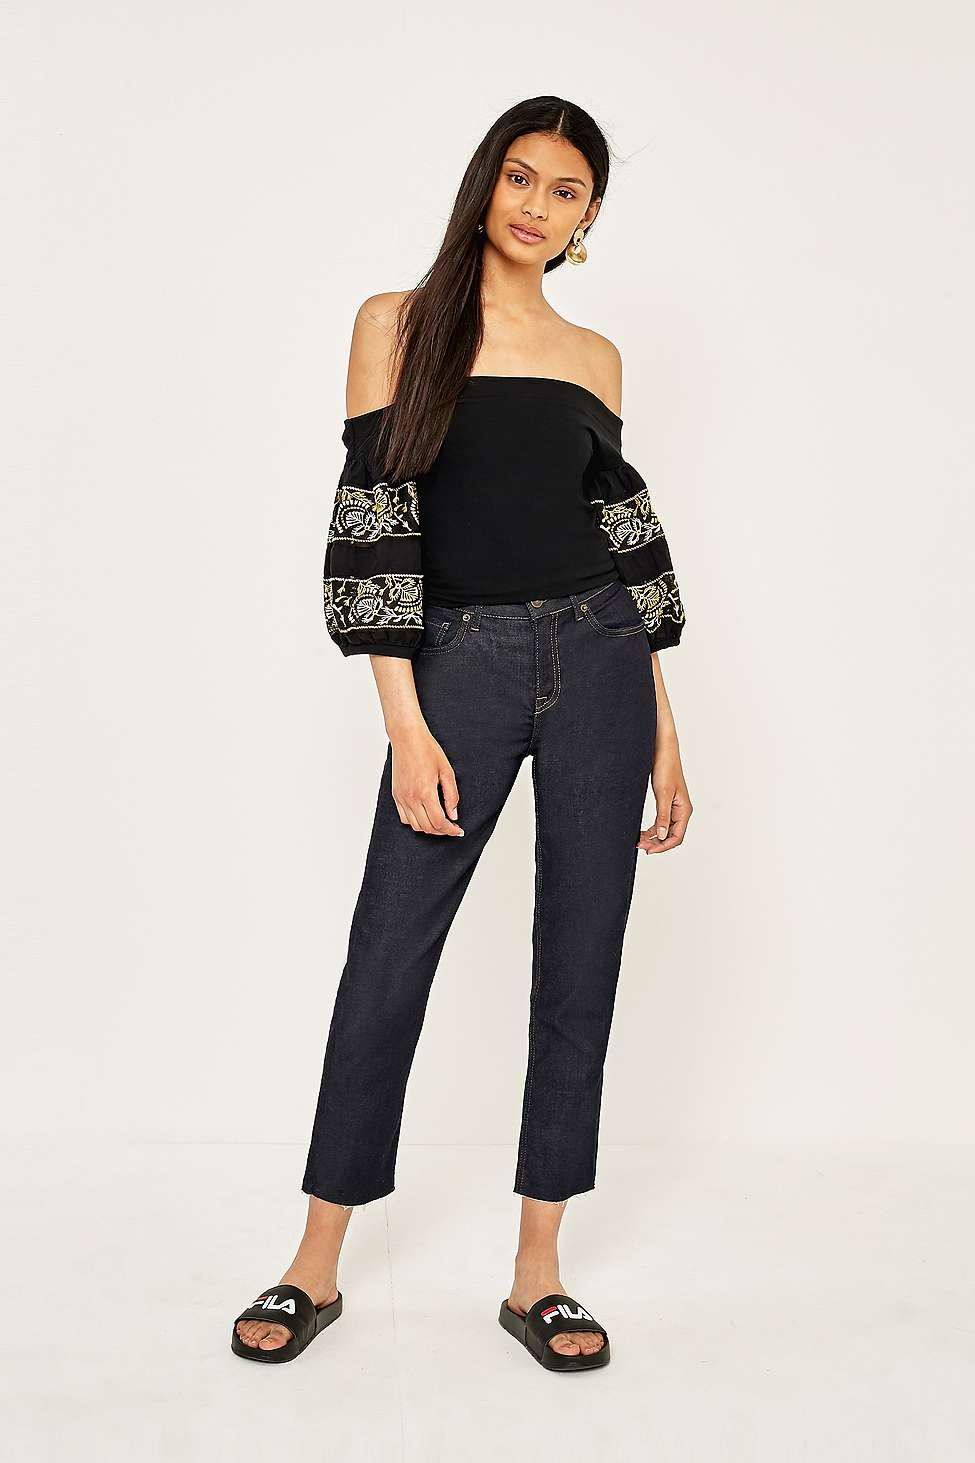 fa4b32cc52159 Free People Rock With It Off-the-shoulder Embroidered Top - Womens M ...